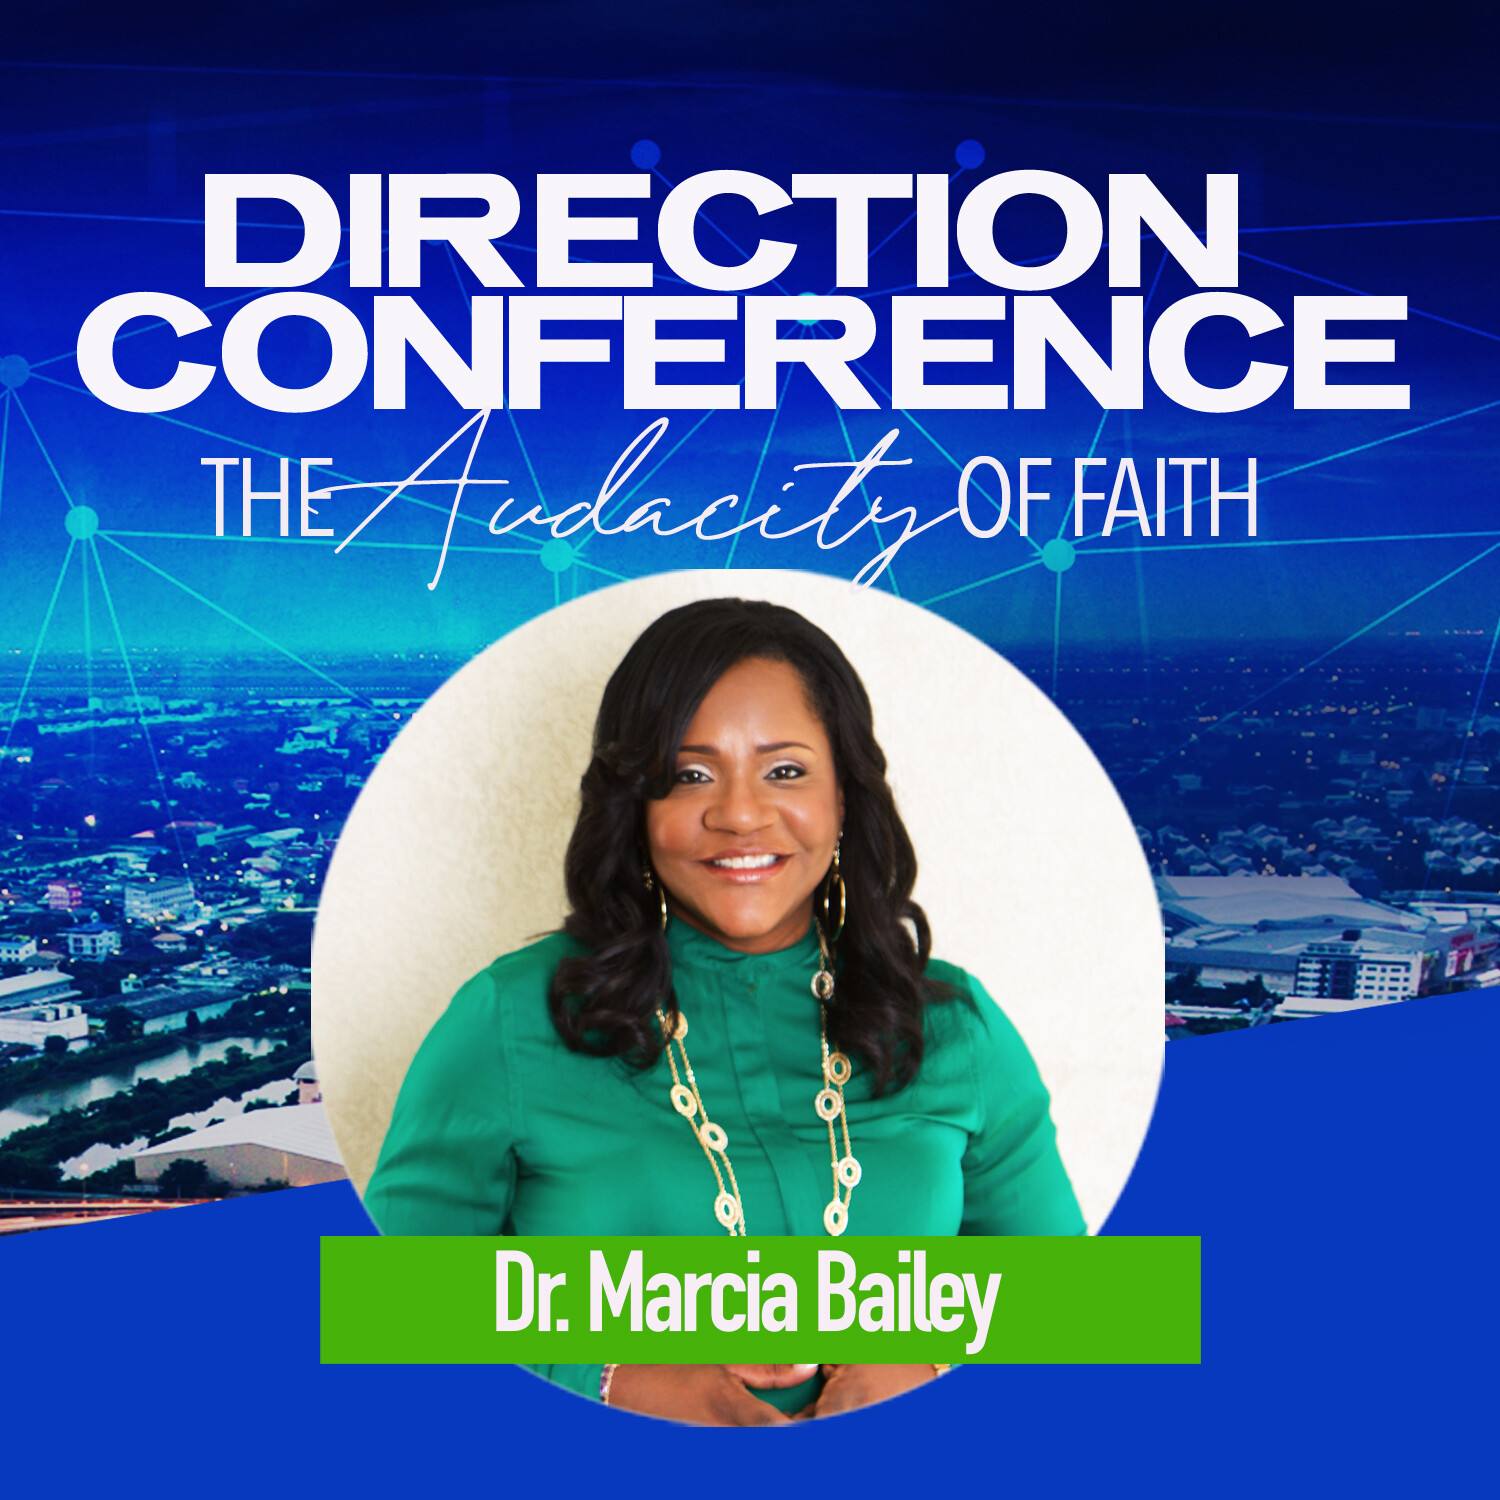 Direction Conference 2020 - Dr. Marcia Bailey